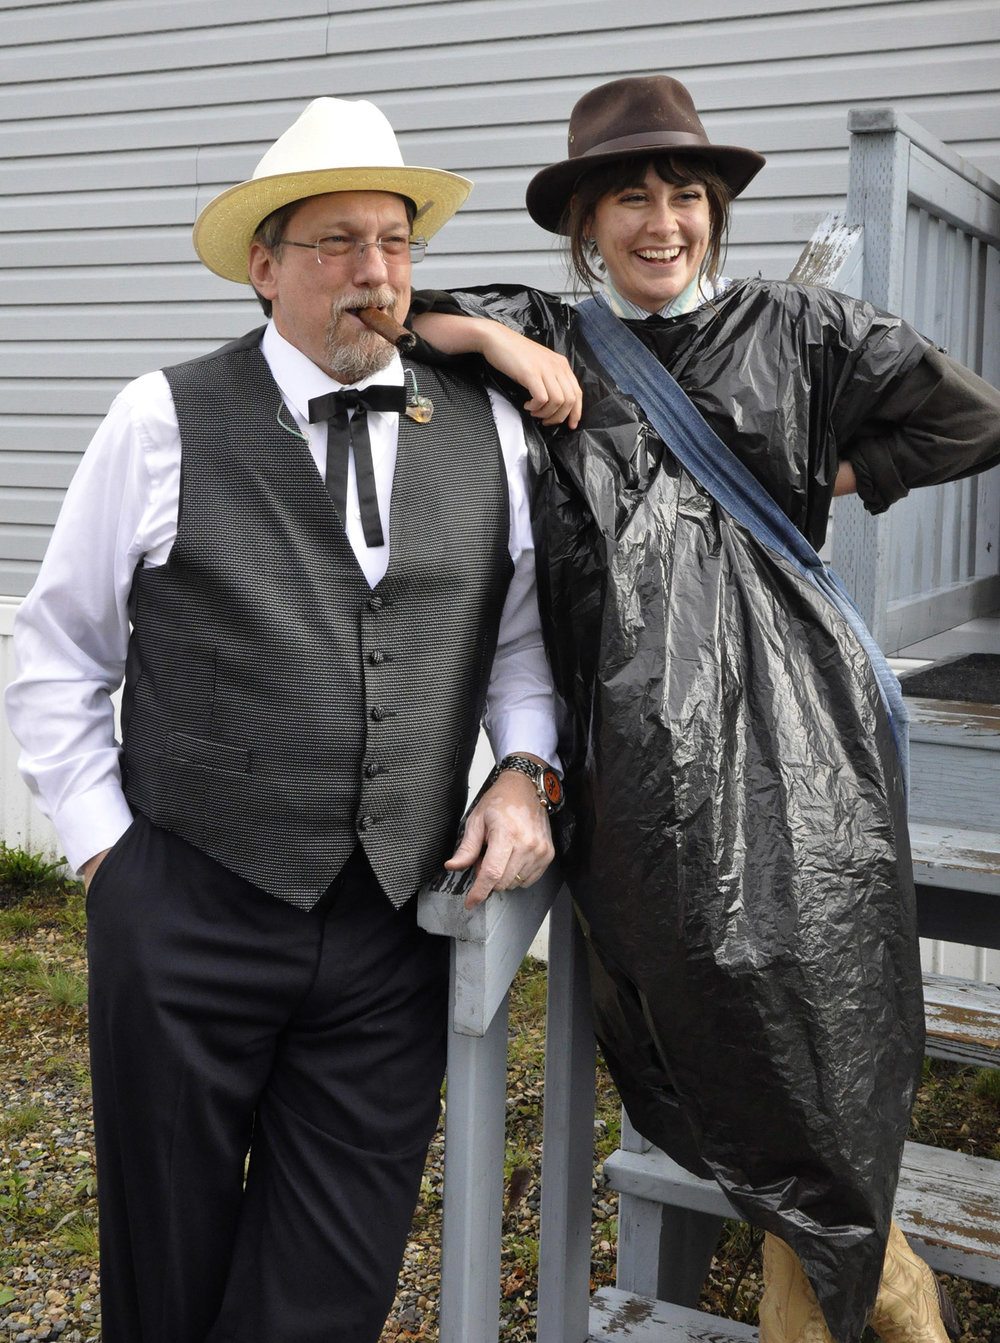 Jerry Douglas of The Earls of Leicester with Ellen Froese-Kooijenga of In with the Old (Blueberry band contest winners)